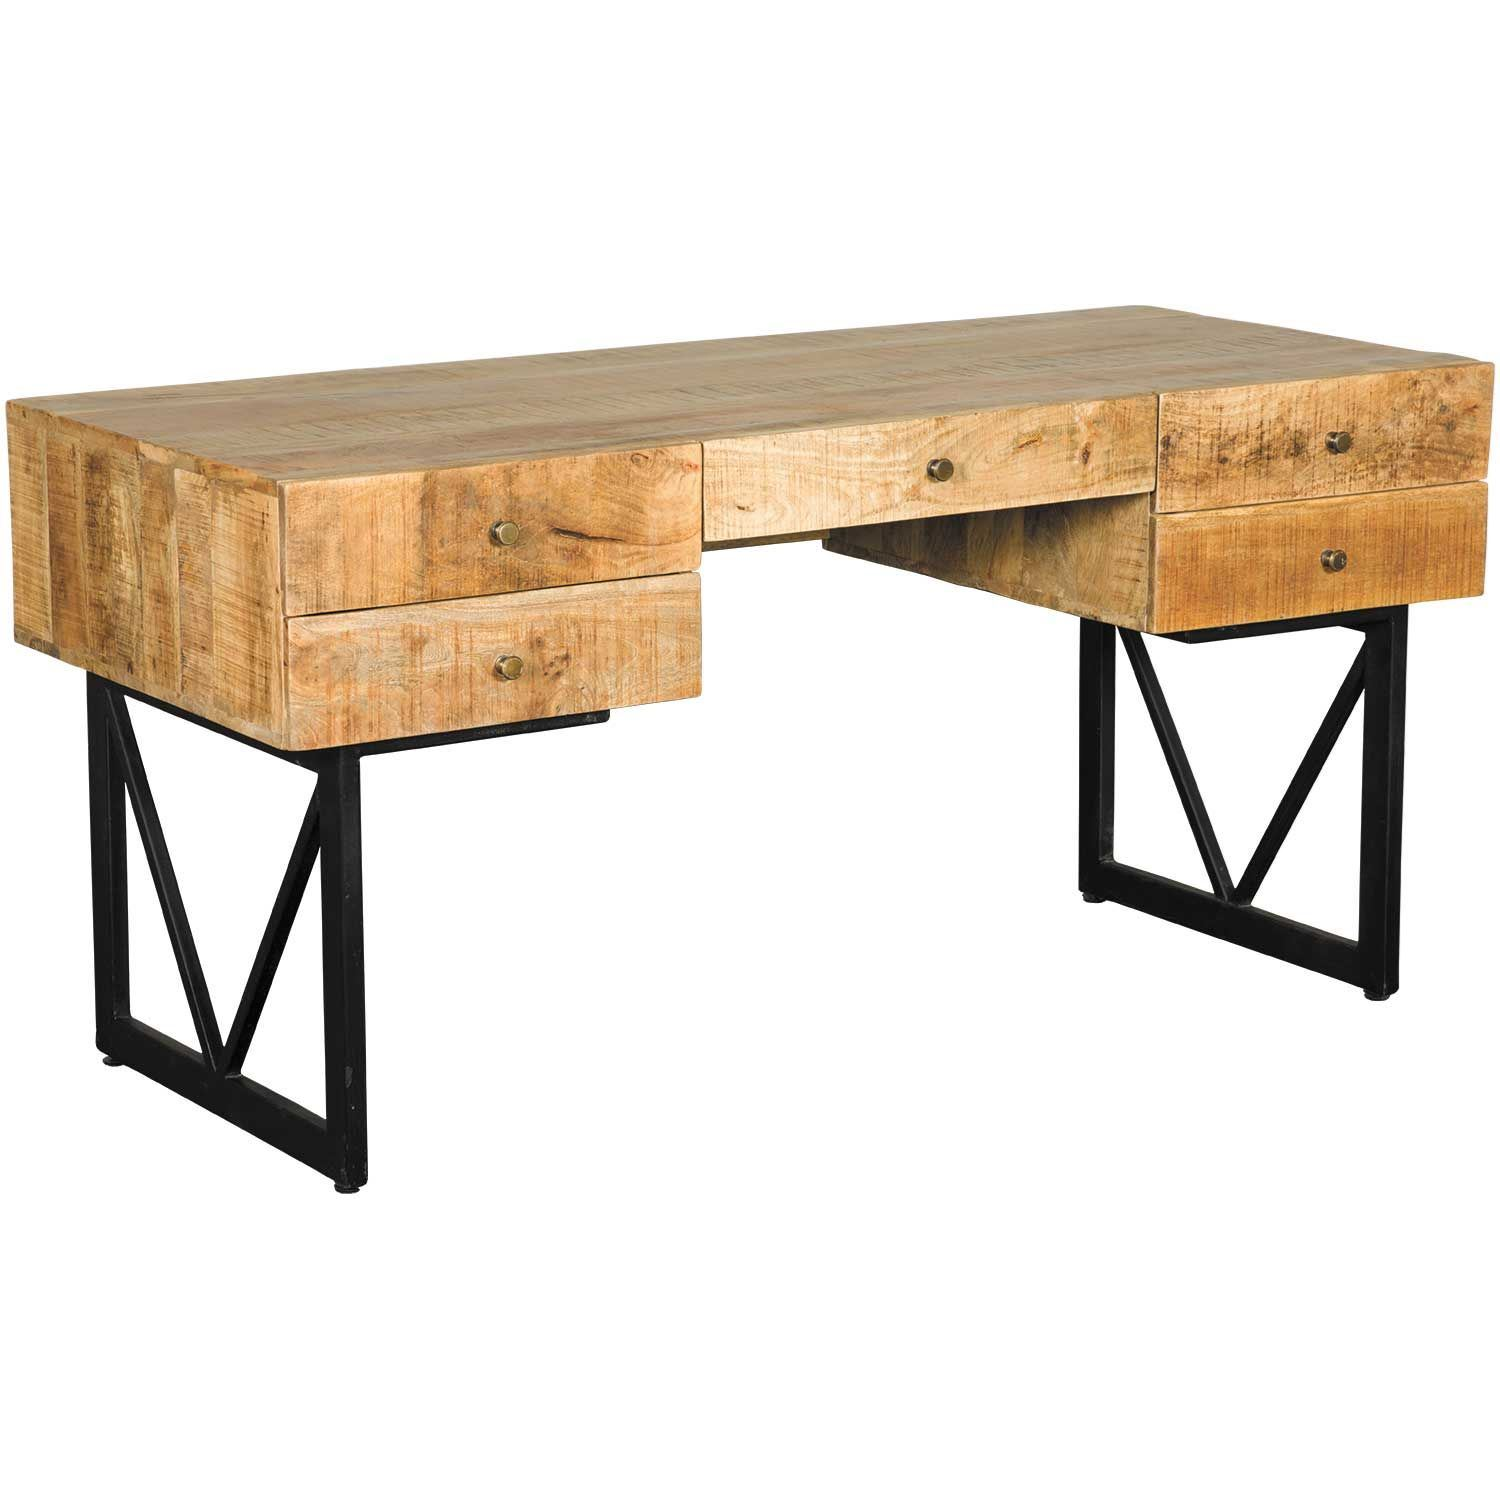 Picture of Vintage Industrial Writing Desk - Vintage Industrial Desks And Writing Tables American Furniture